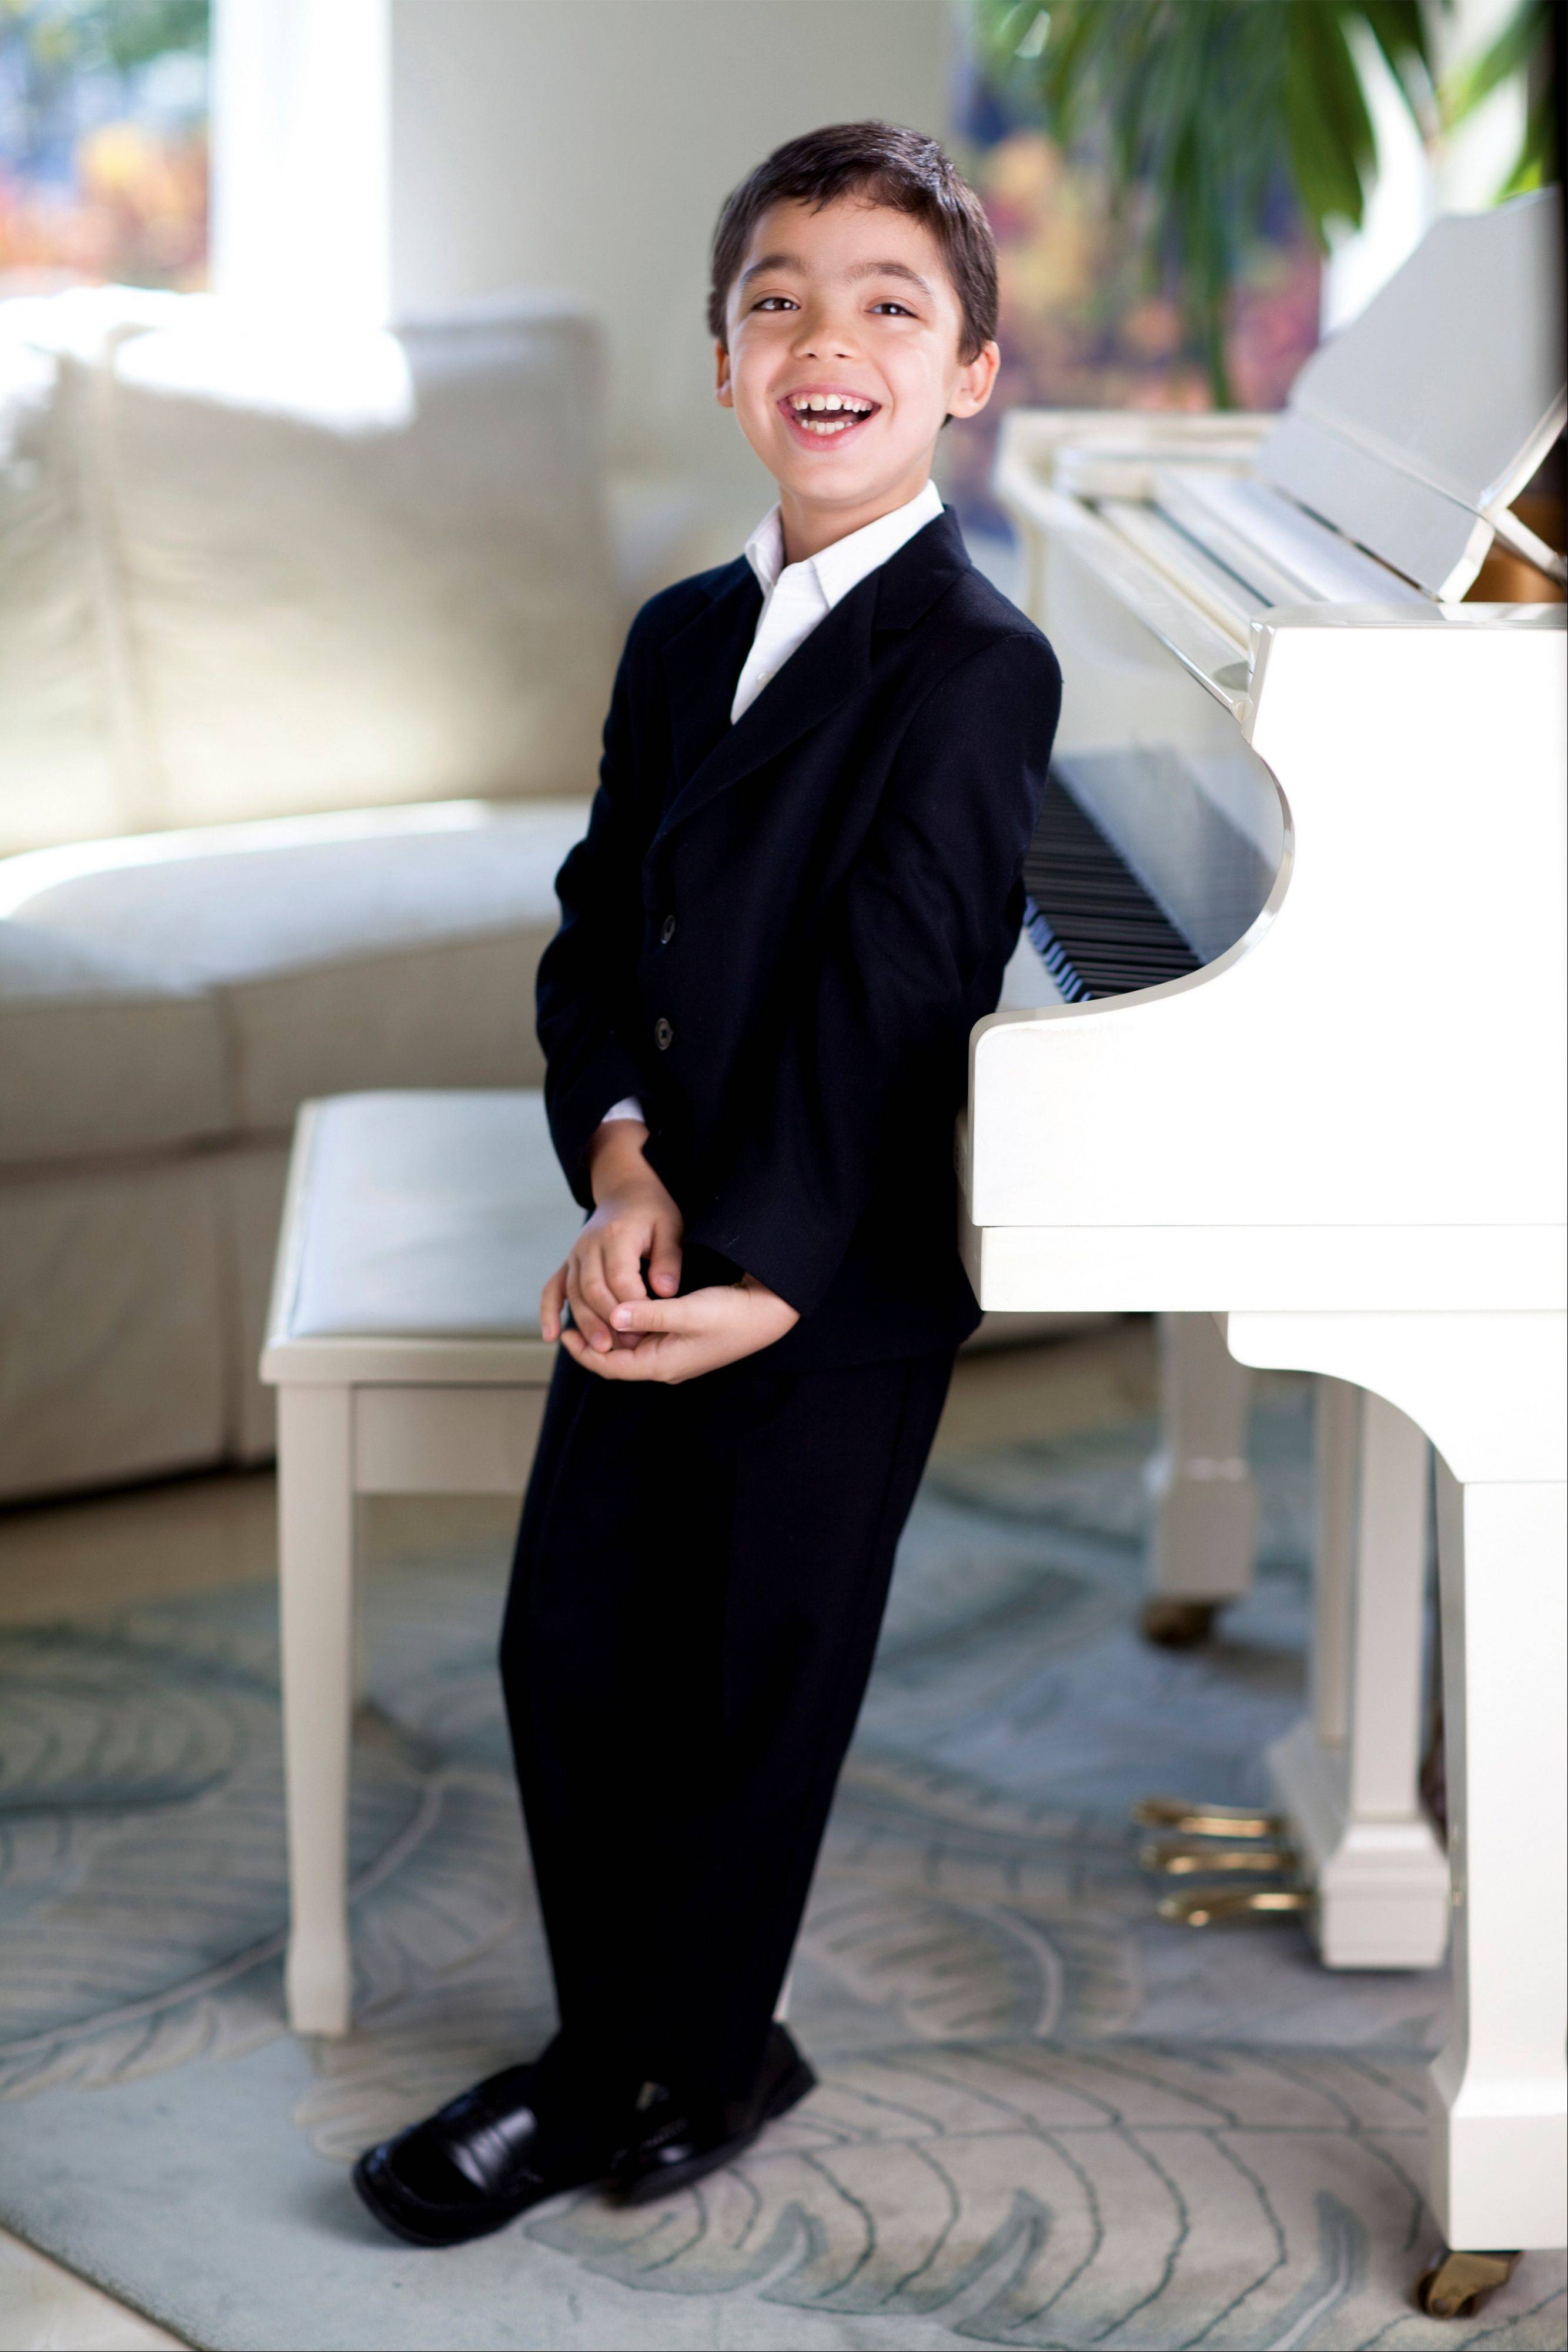 Child prodigy pianist Ethan Bortnick appears at the North Shore Center for the Performing Arts in Skokie.